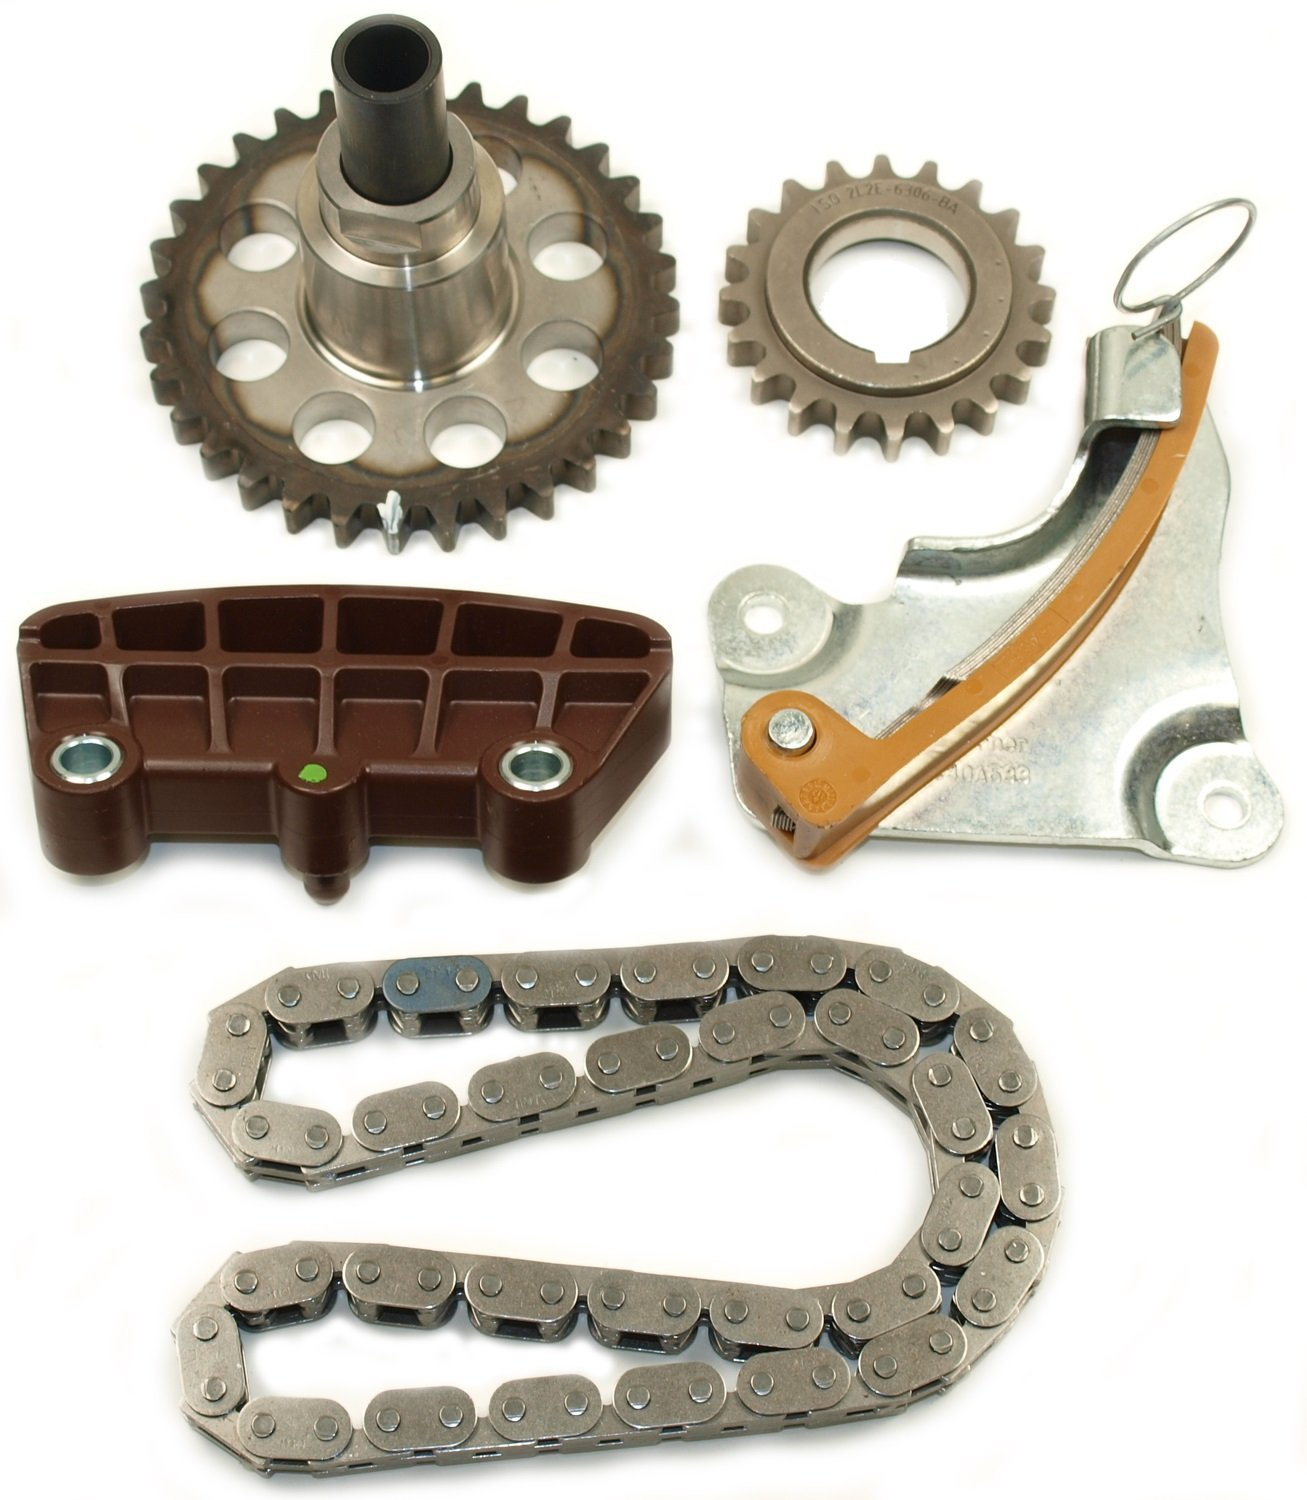 Cloyes 9-0398SE Timing Chain Kit